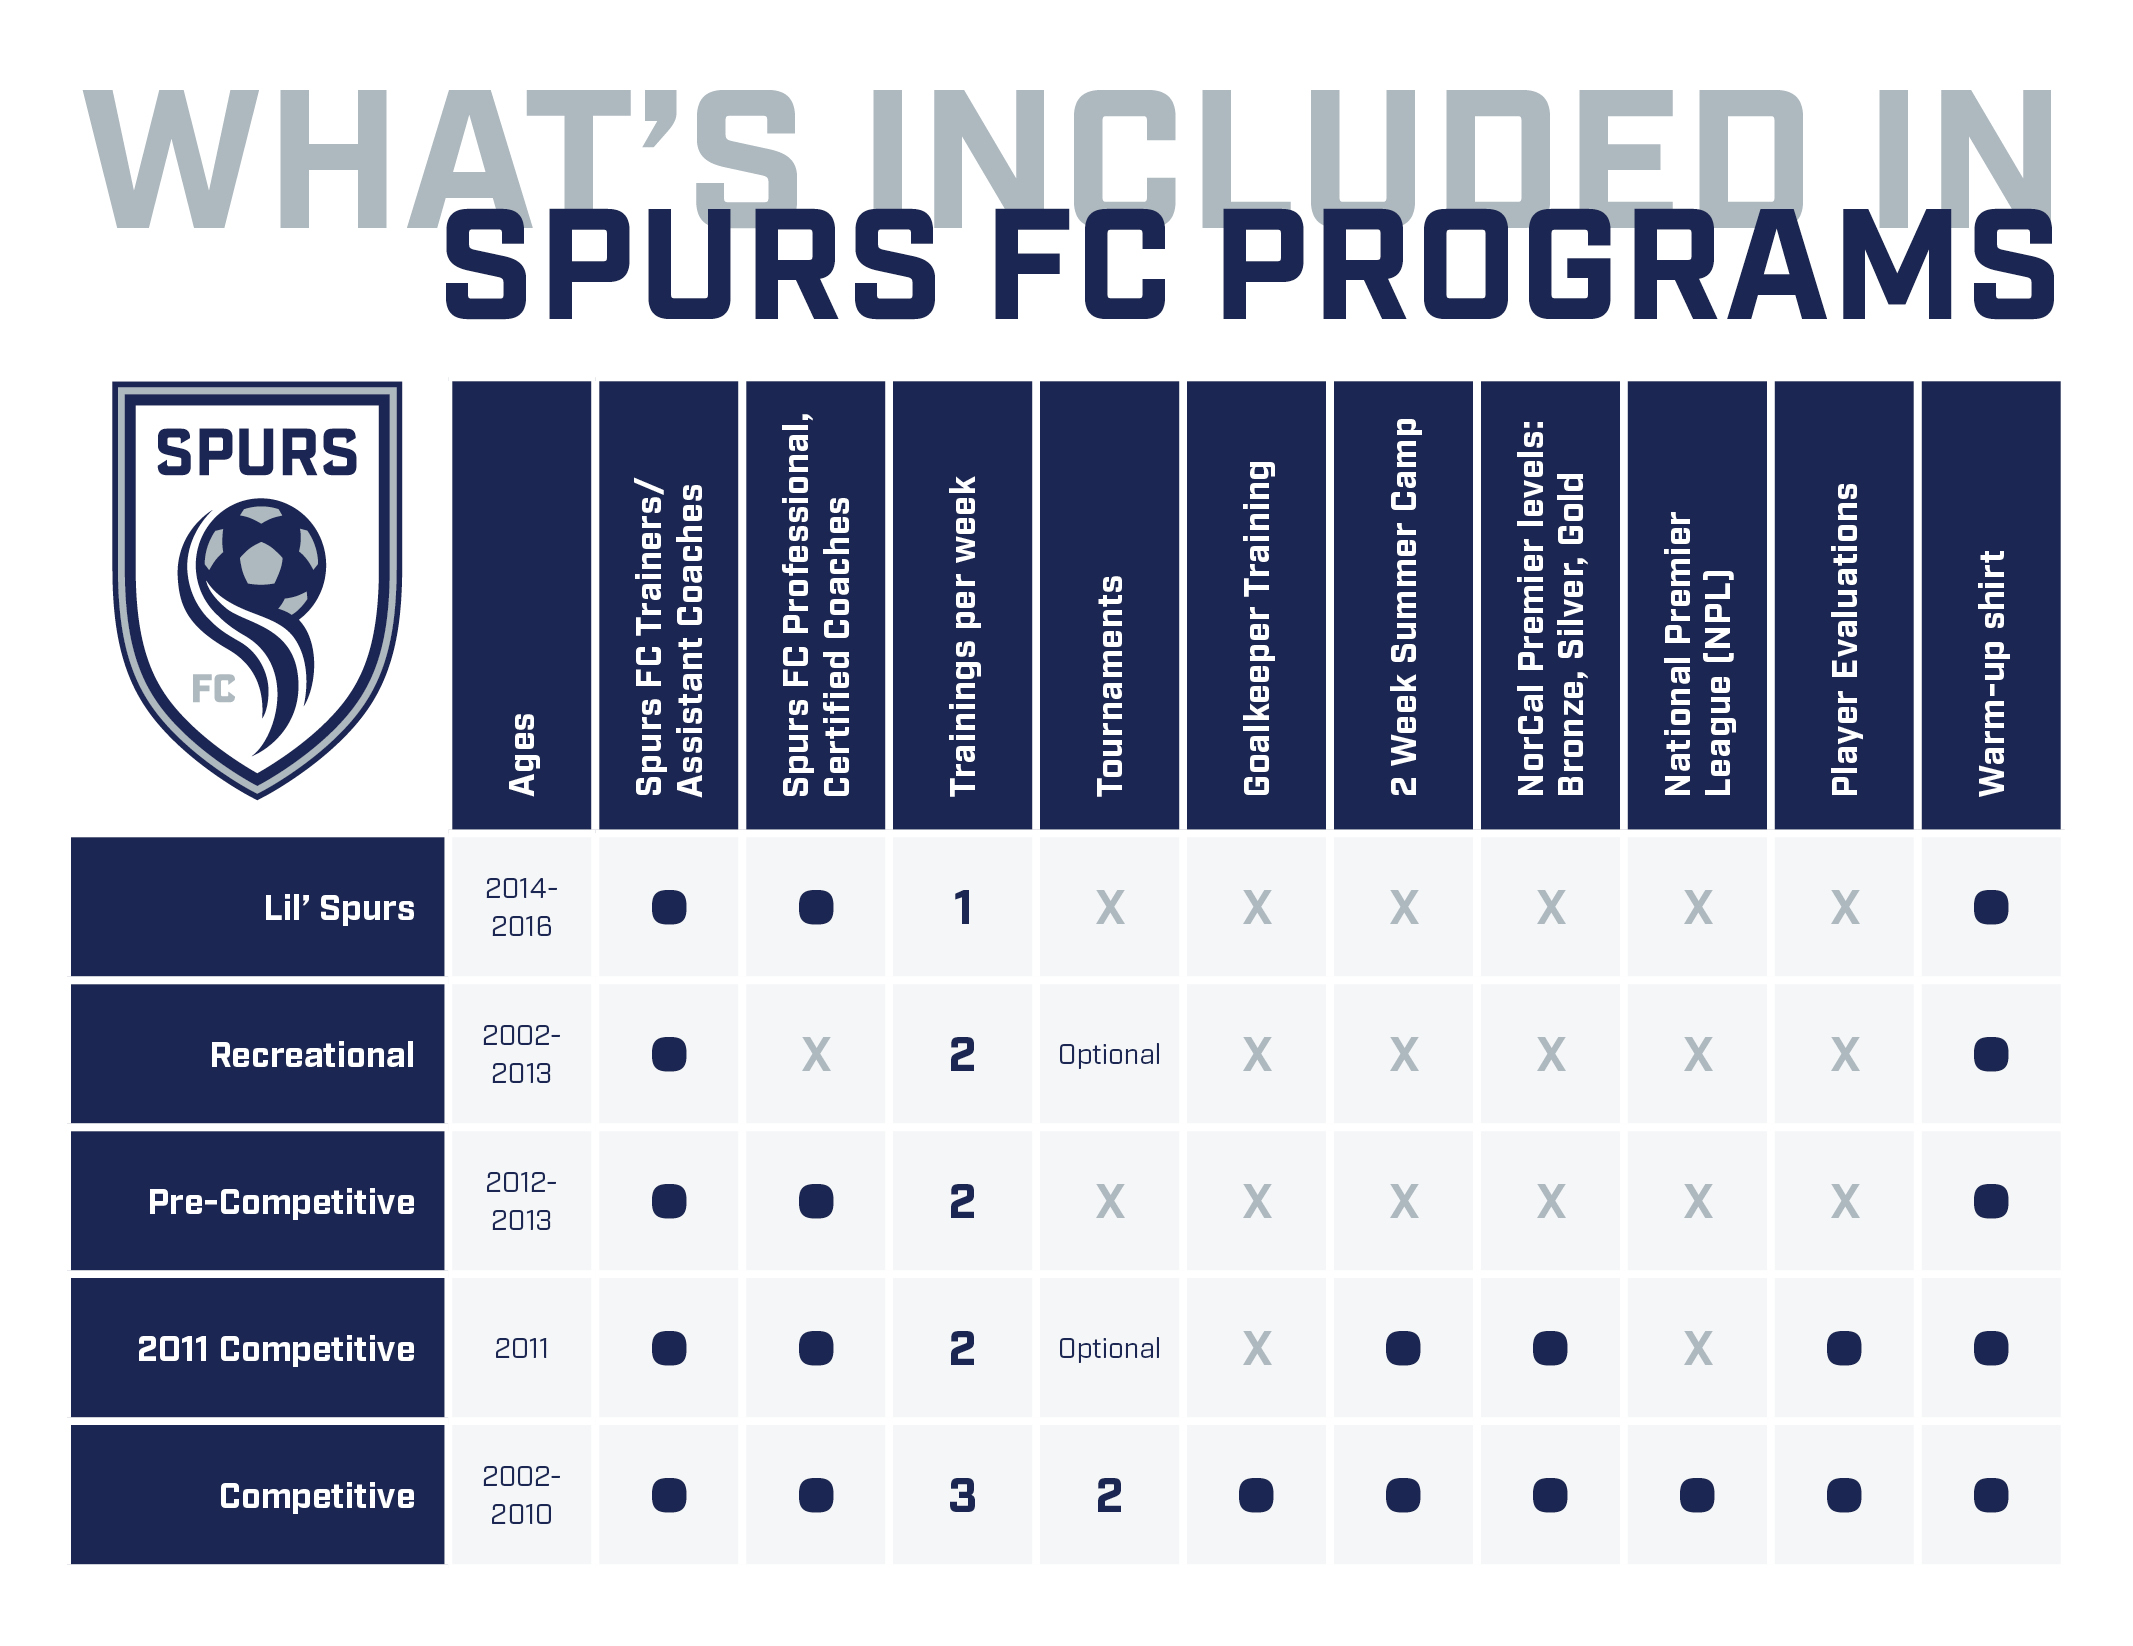 SpursFC_Programs2019_2020_chart_version2.jpg